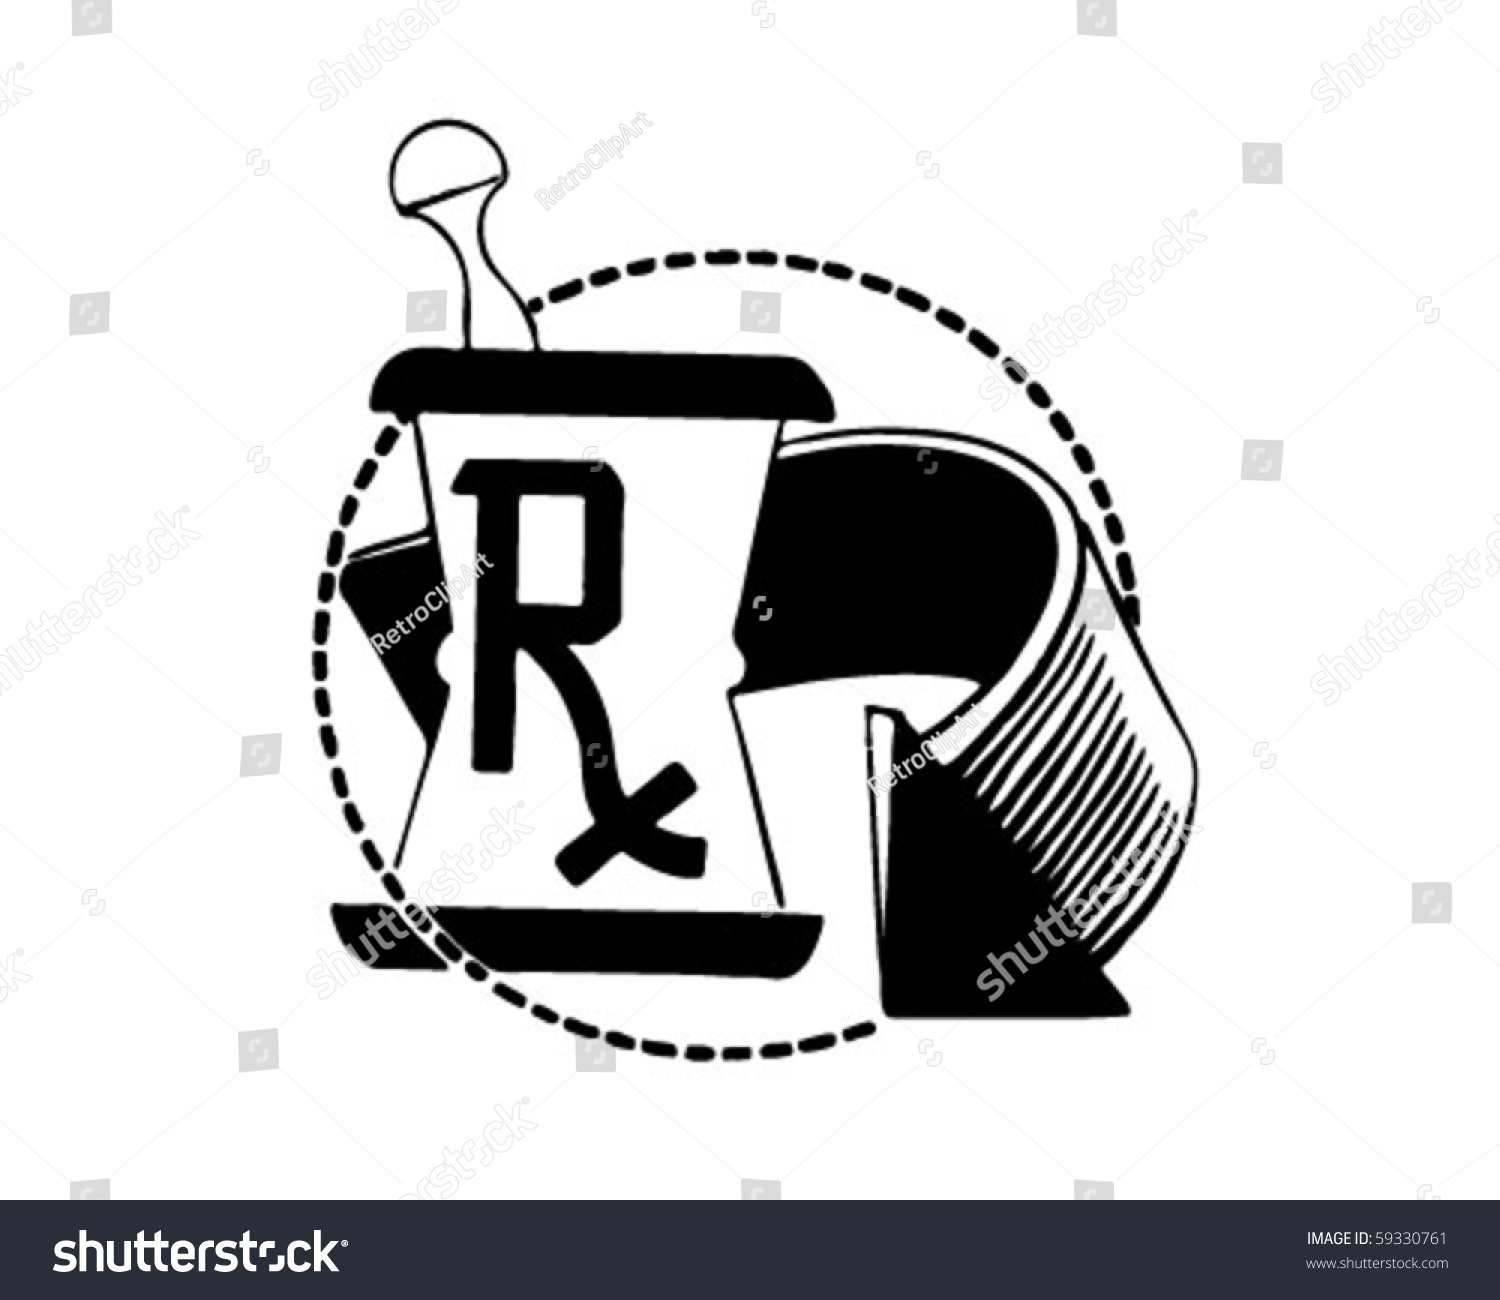 Rx Mortar With Curved Arrow - Retro Clip Art Stock Vector ...